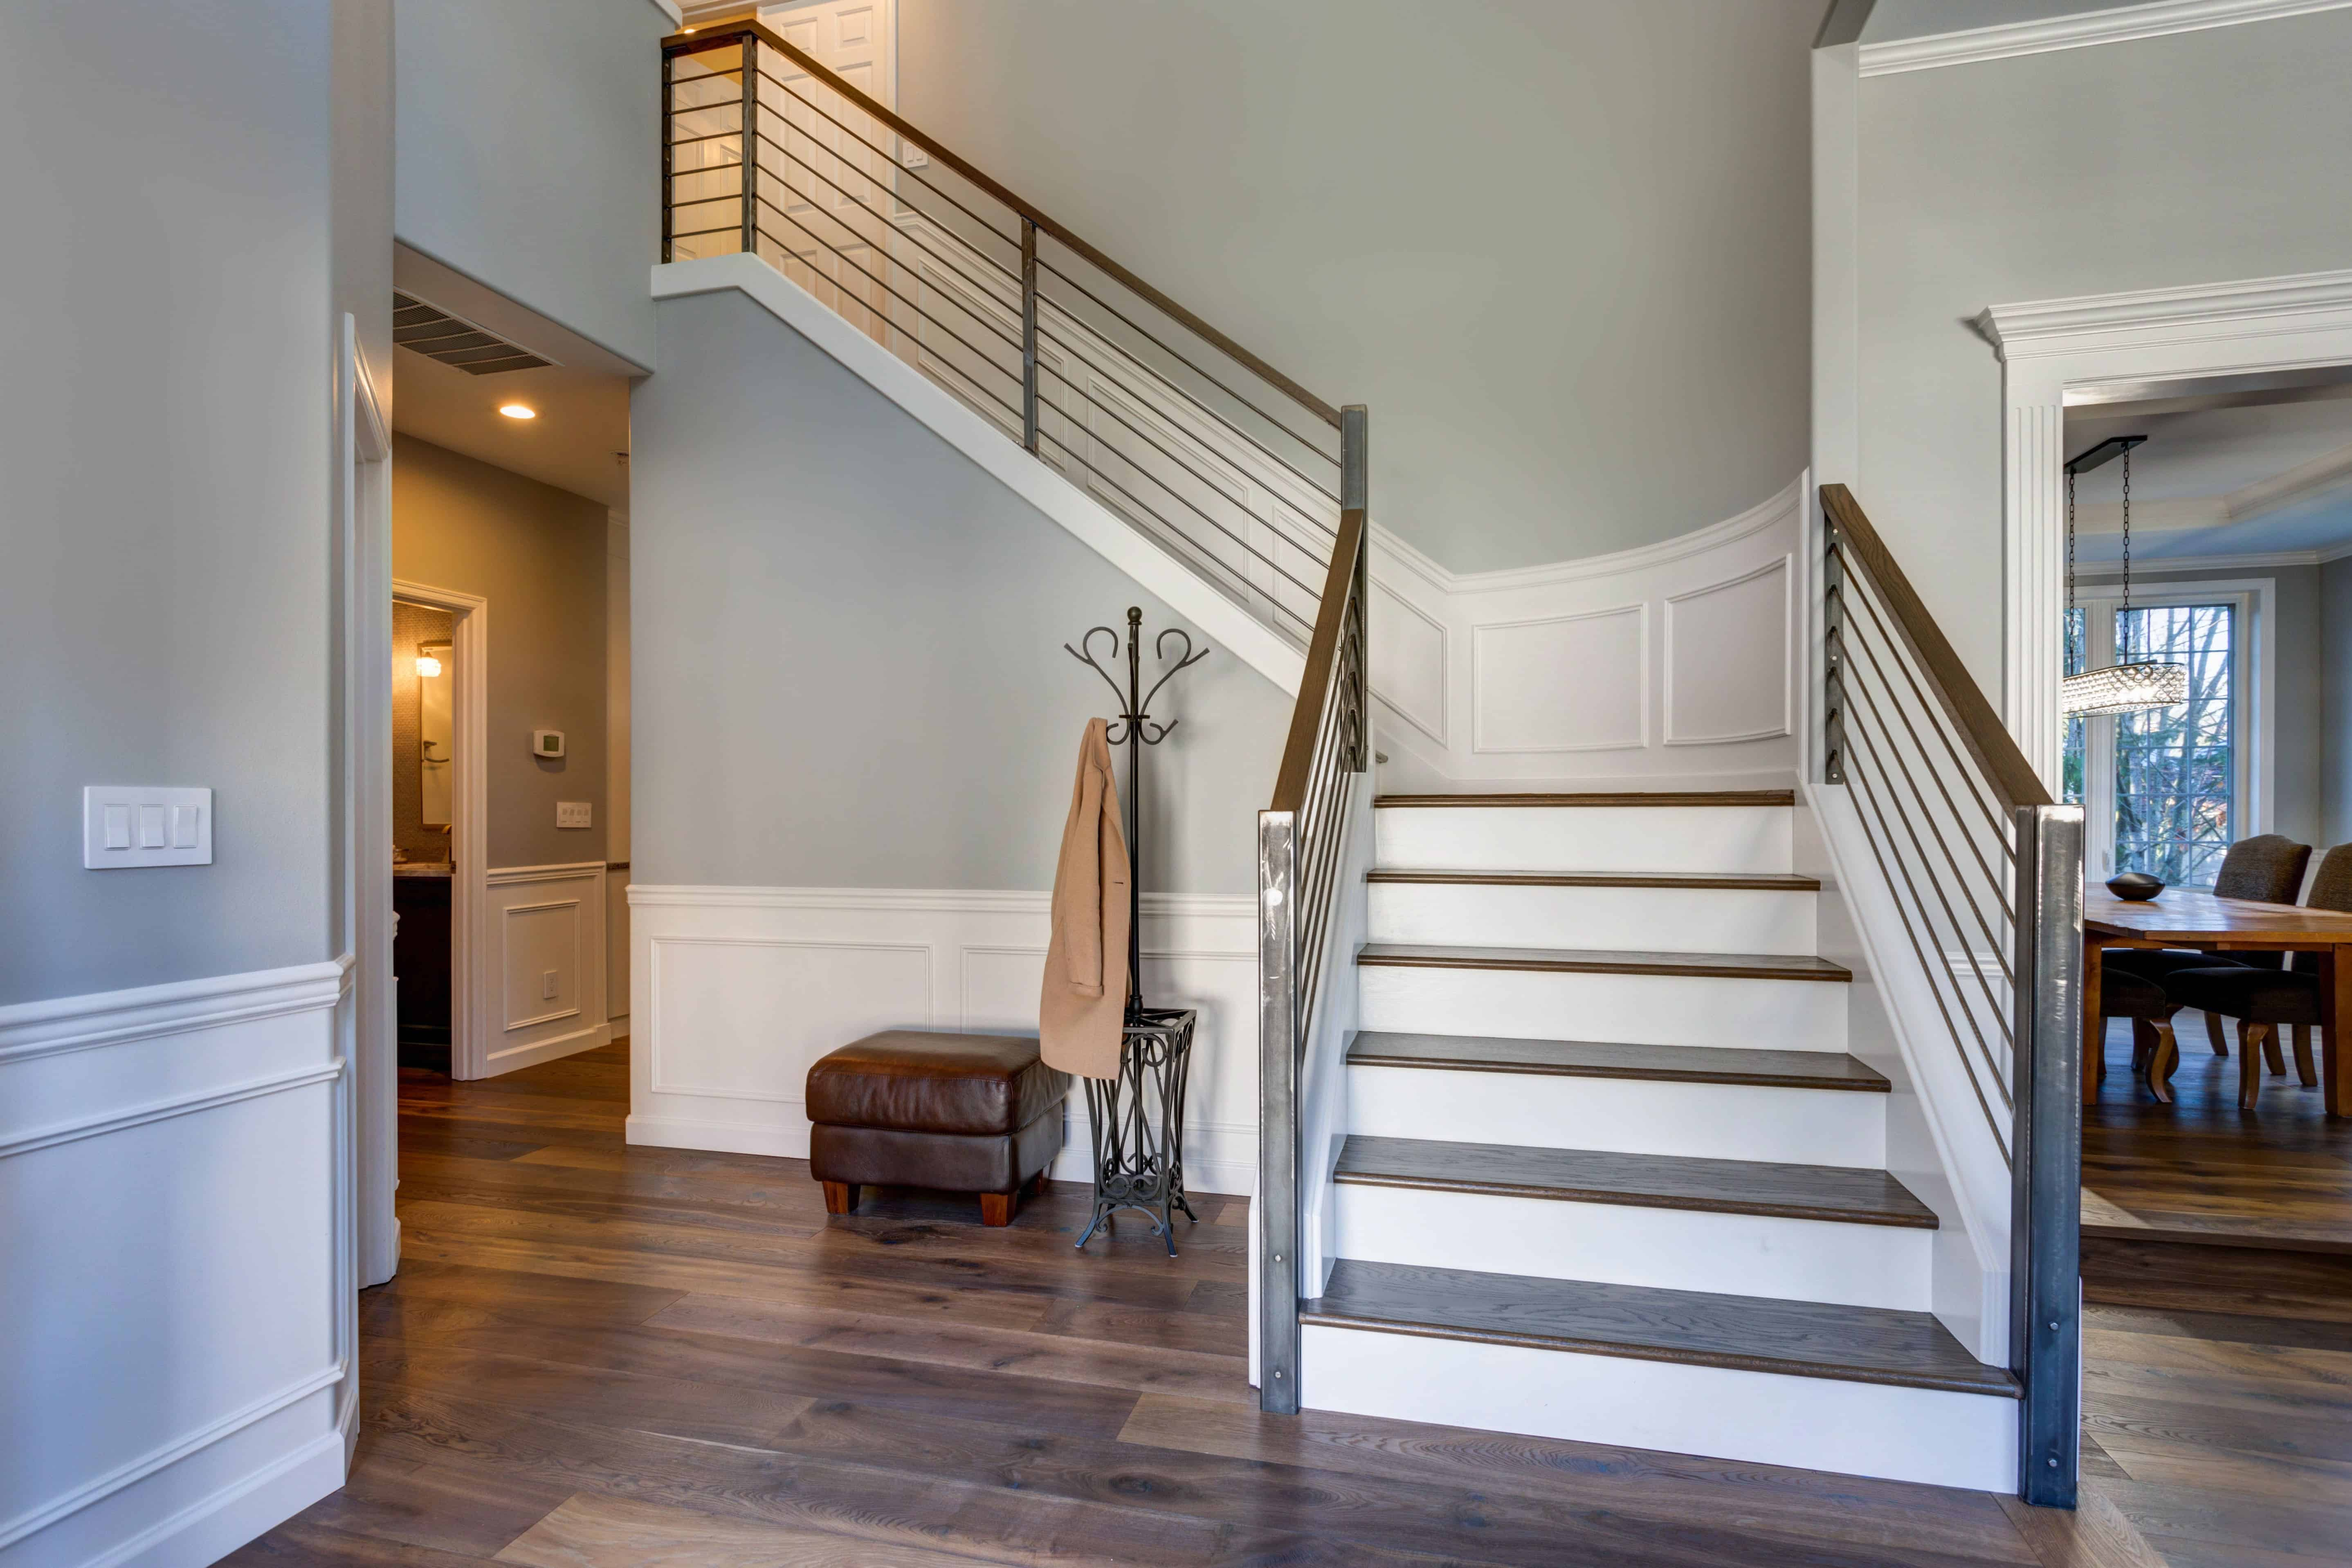 The gray walls of this elegant foyer have white wooden finishings on the bottom half that is contrasted by the hardwood flooring and the small cushioned chair beside the dark iron coat rack with an umbrella rack at the bottom.